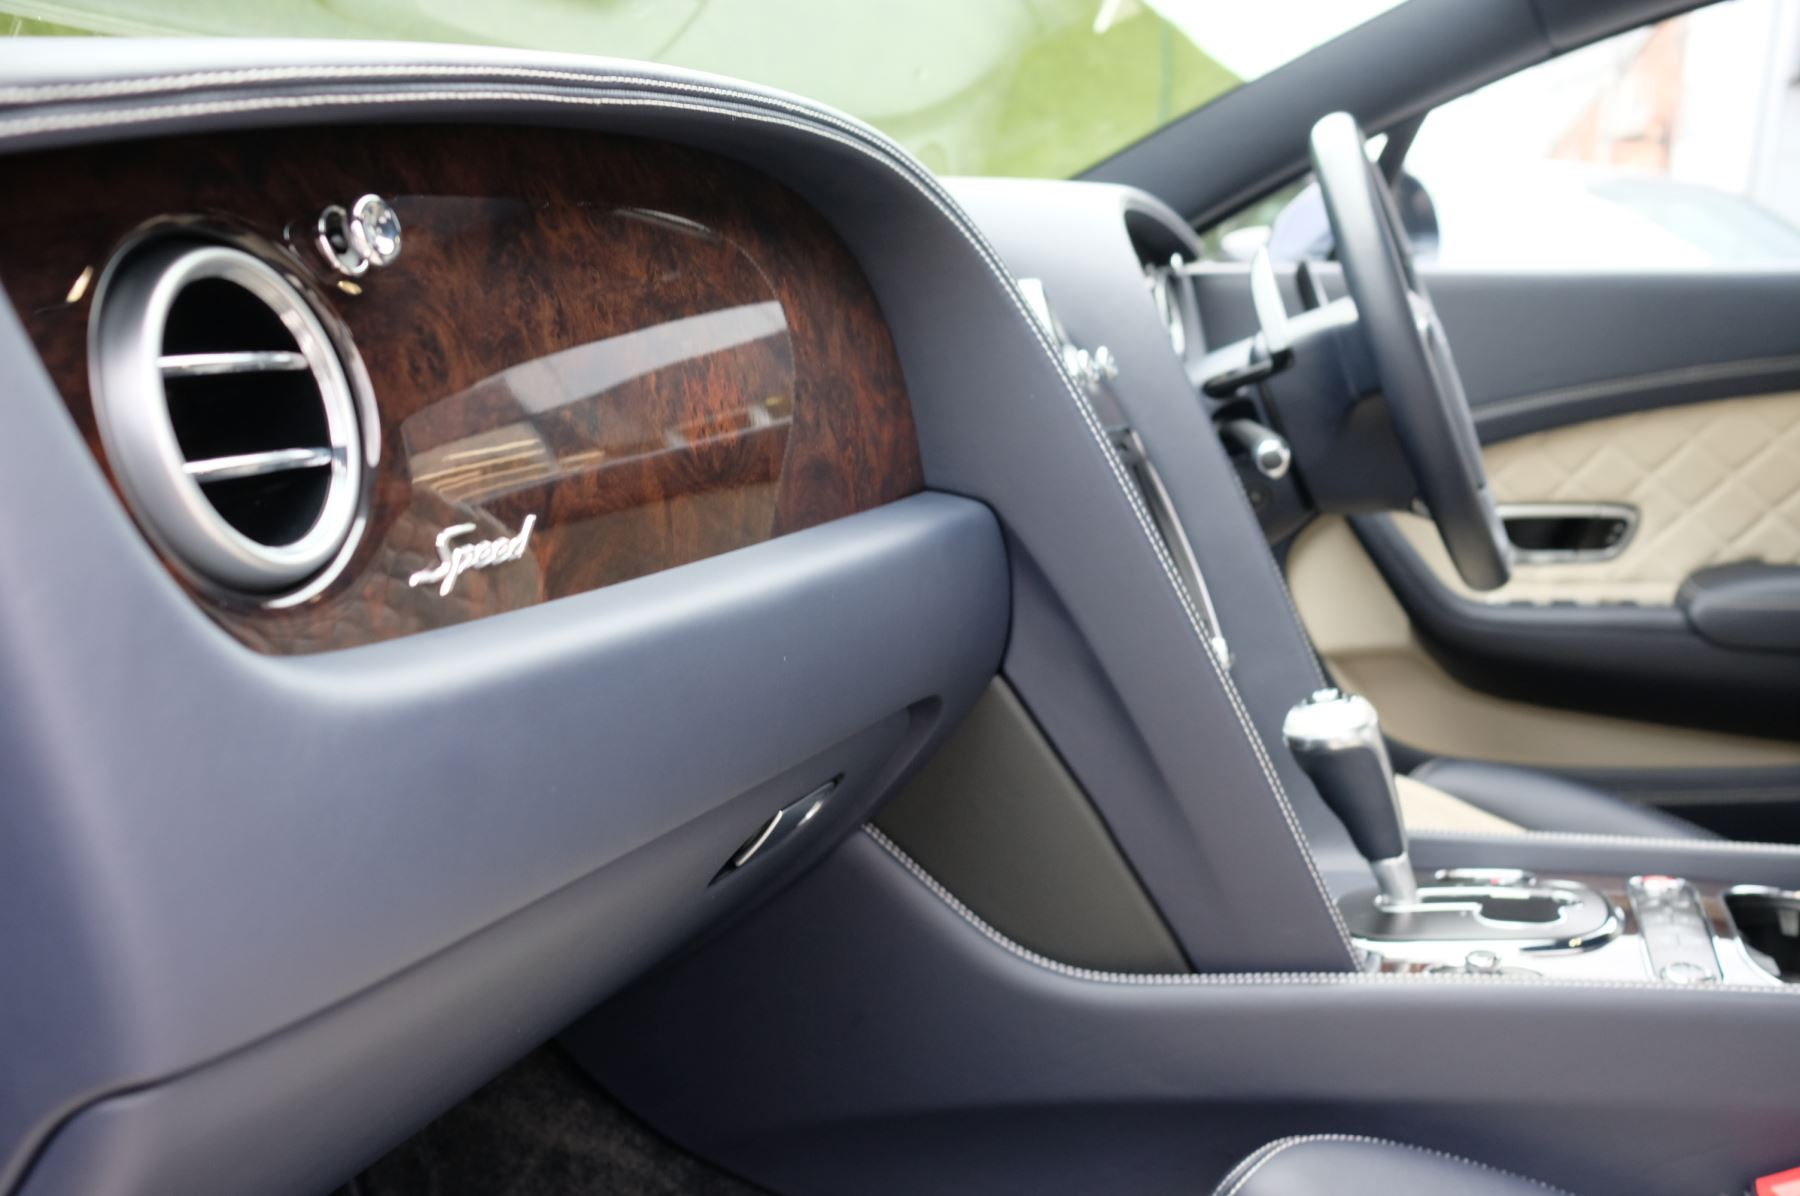 Bentley Continental GT 6.0 W12 [635] Speed - 21 inch Directional Sports Alloys - Ventilated Front Seats with Massage image 19